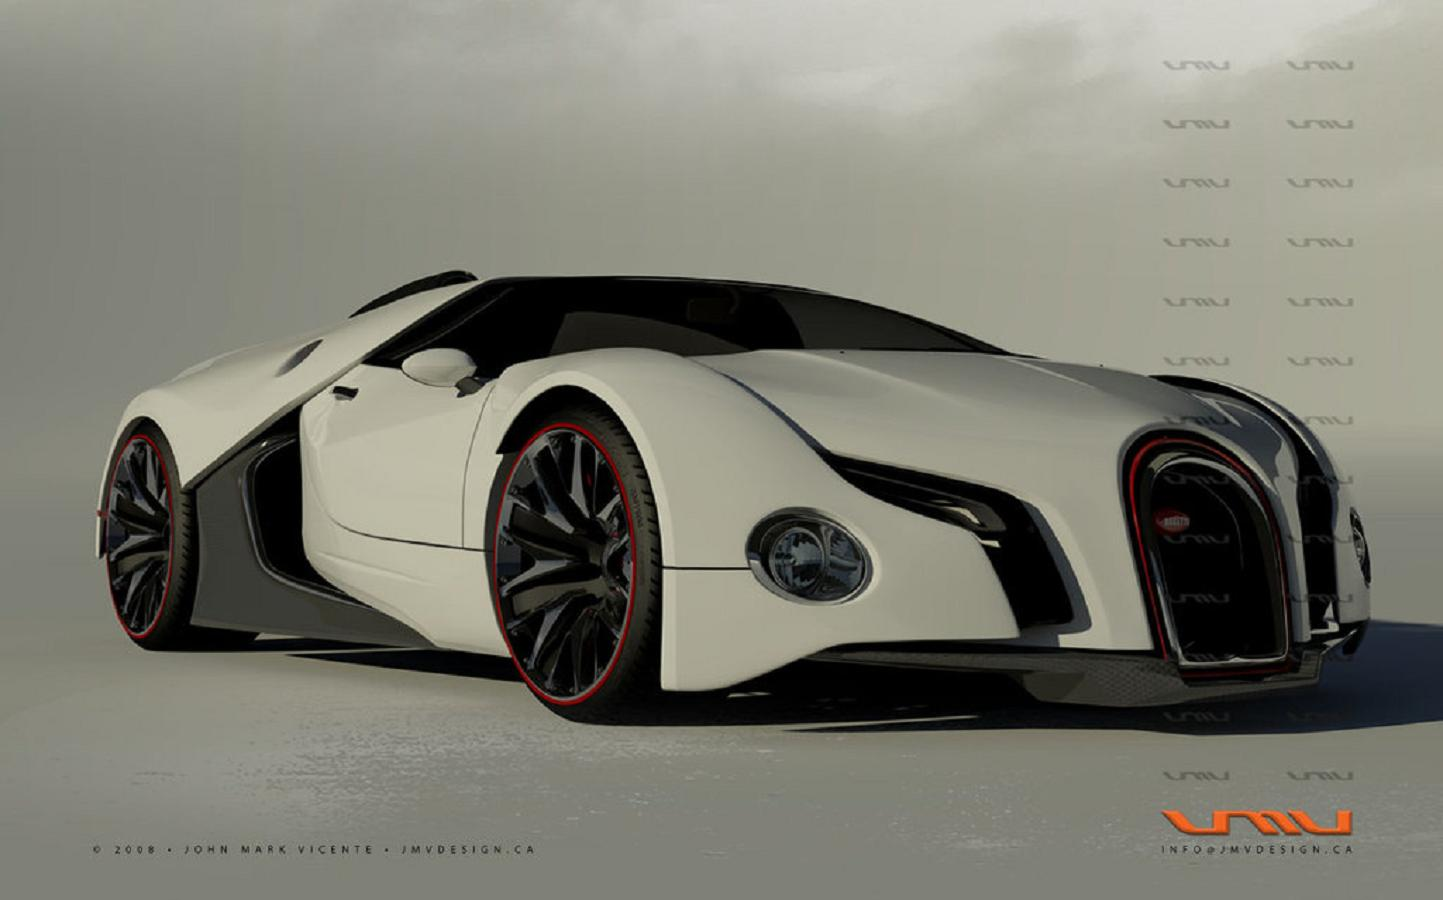 Best Car Wallpapers Ever Top 31 Most Beautiful And Fabulous Bugatti Car Wallpapers